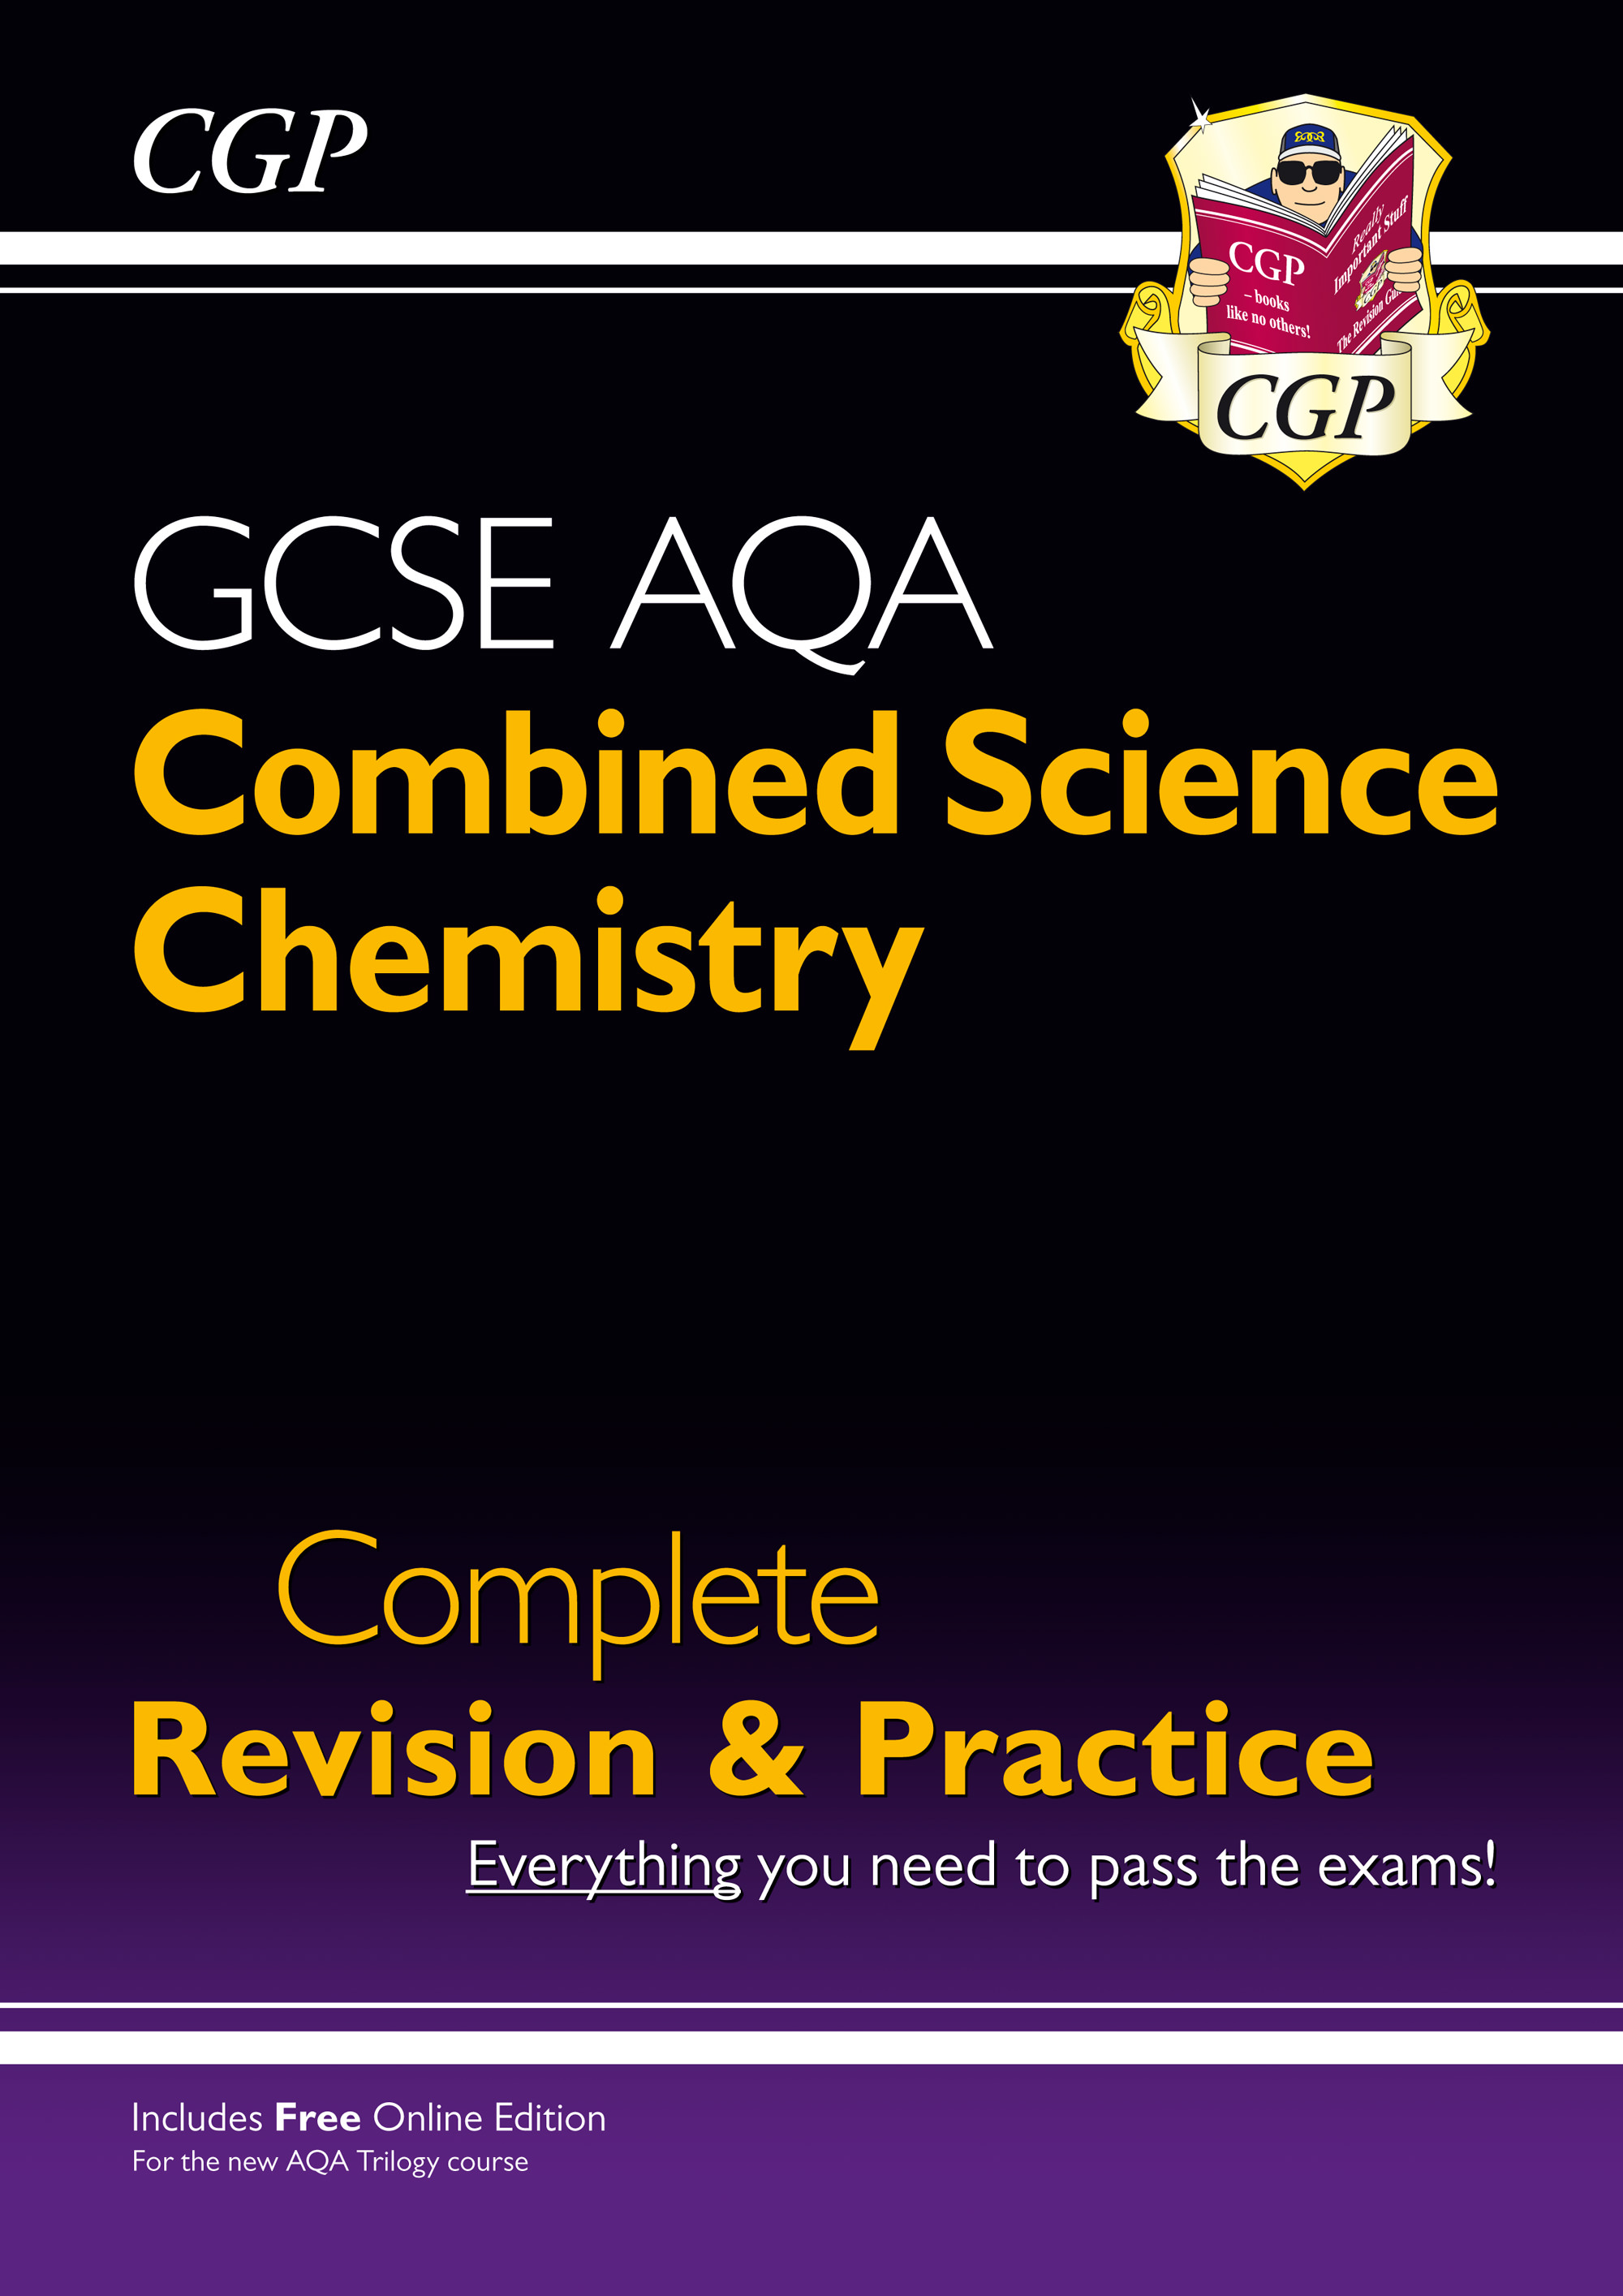 SCCAS41 - New 9-1 GCSE Combined Science: Chemistry AQA Higher Complete Revision & Practice with Onli